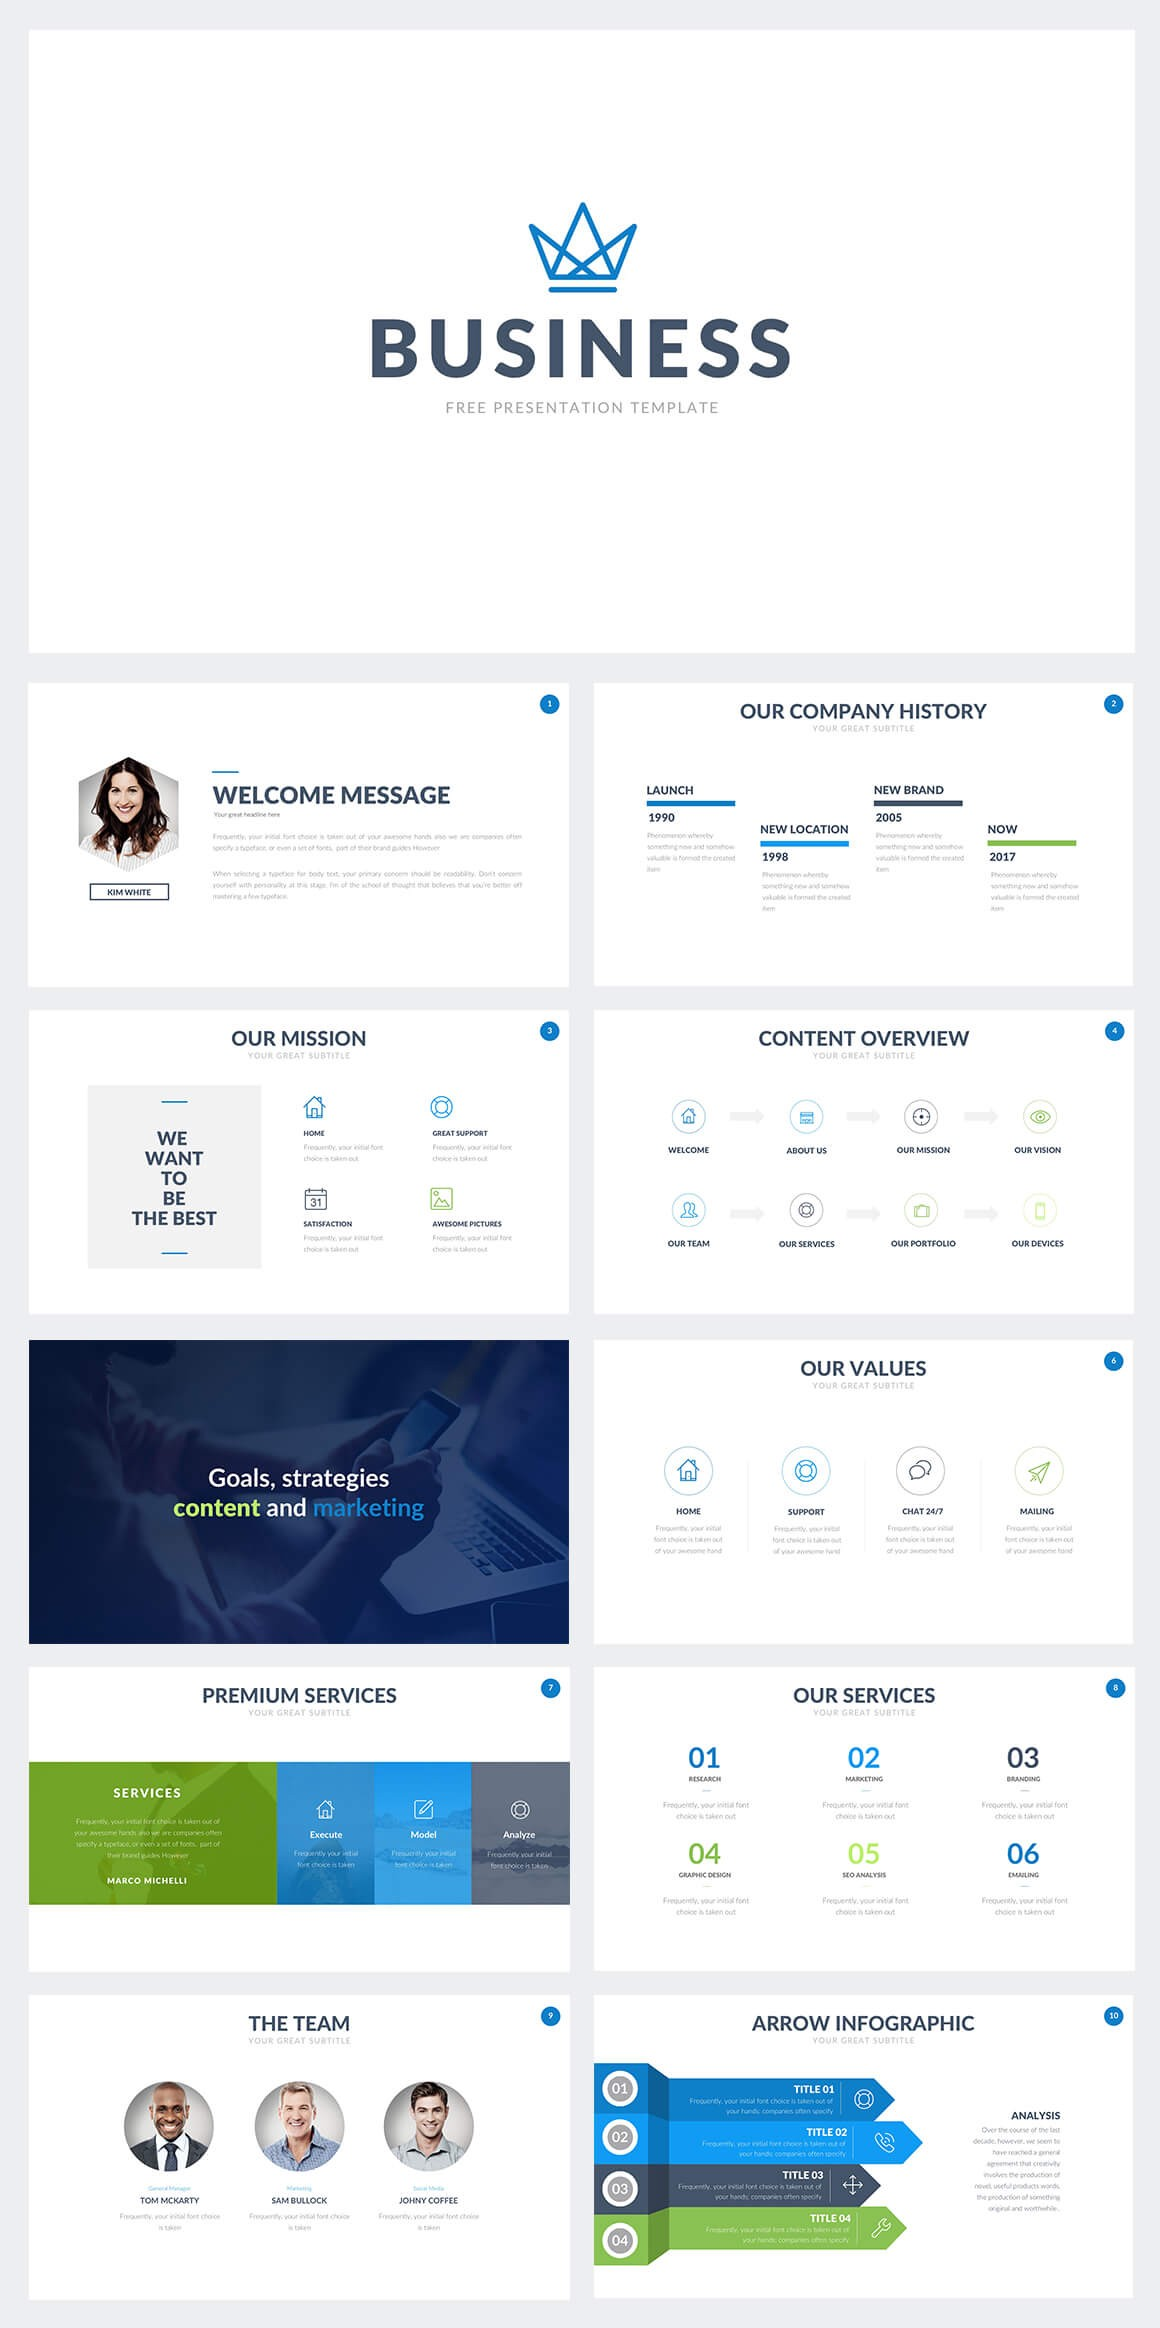 40 free cool powerpoint templates for presentations this business ppt template is great to show your companies values missions history and services take advantage of this free perfect business ppt cheaphphosting Image collections